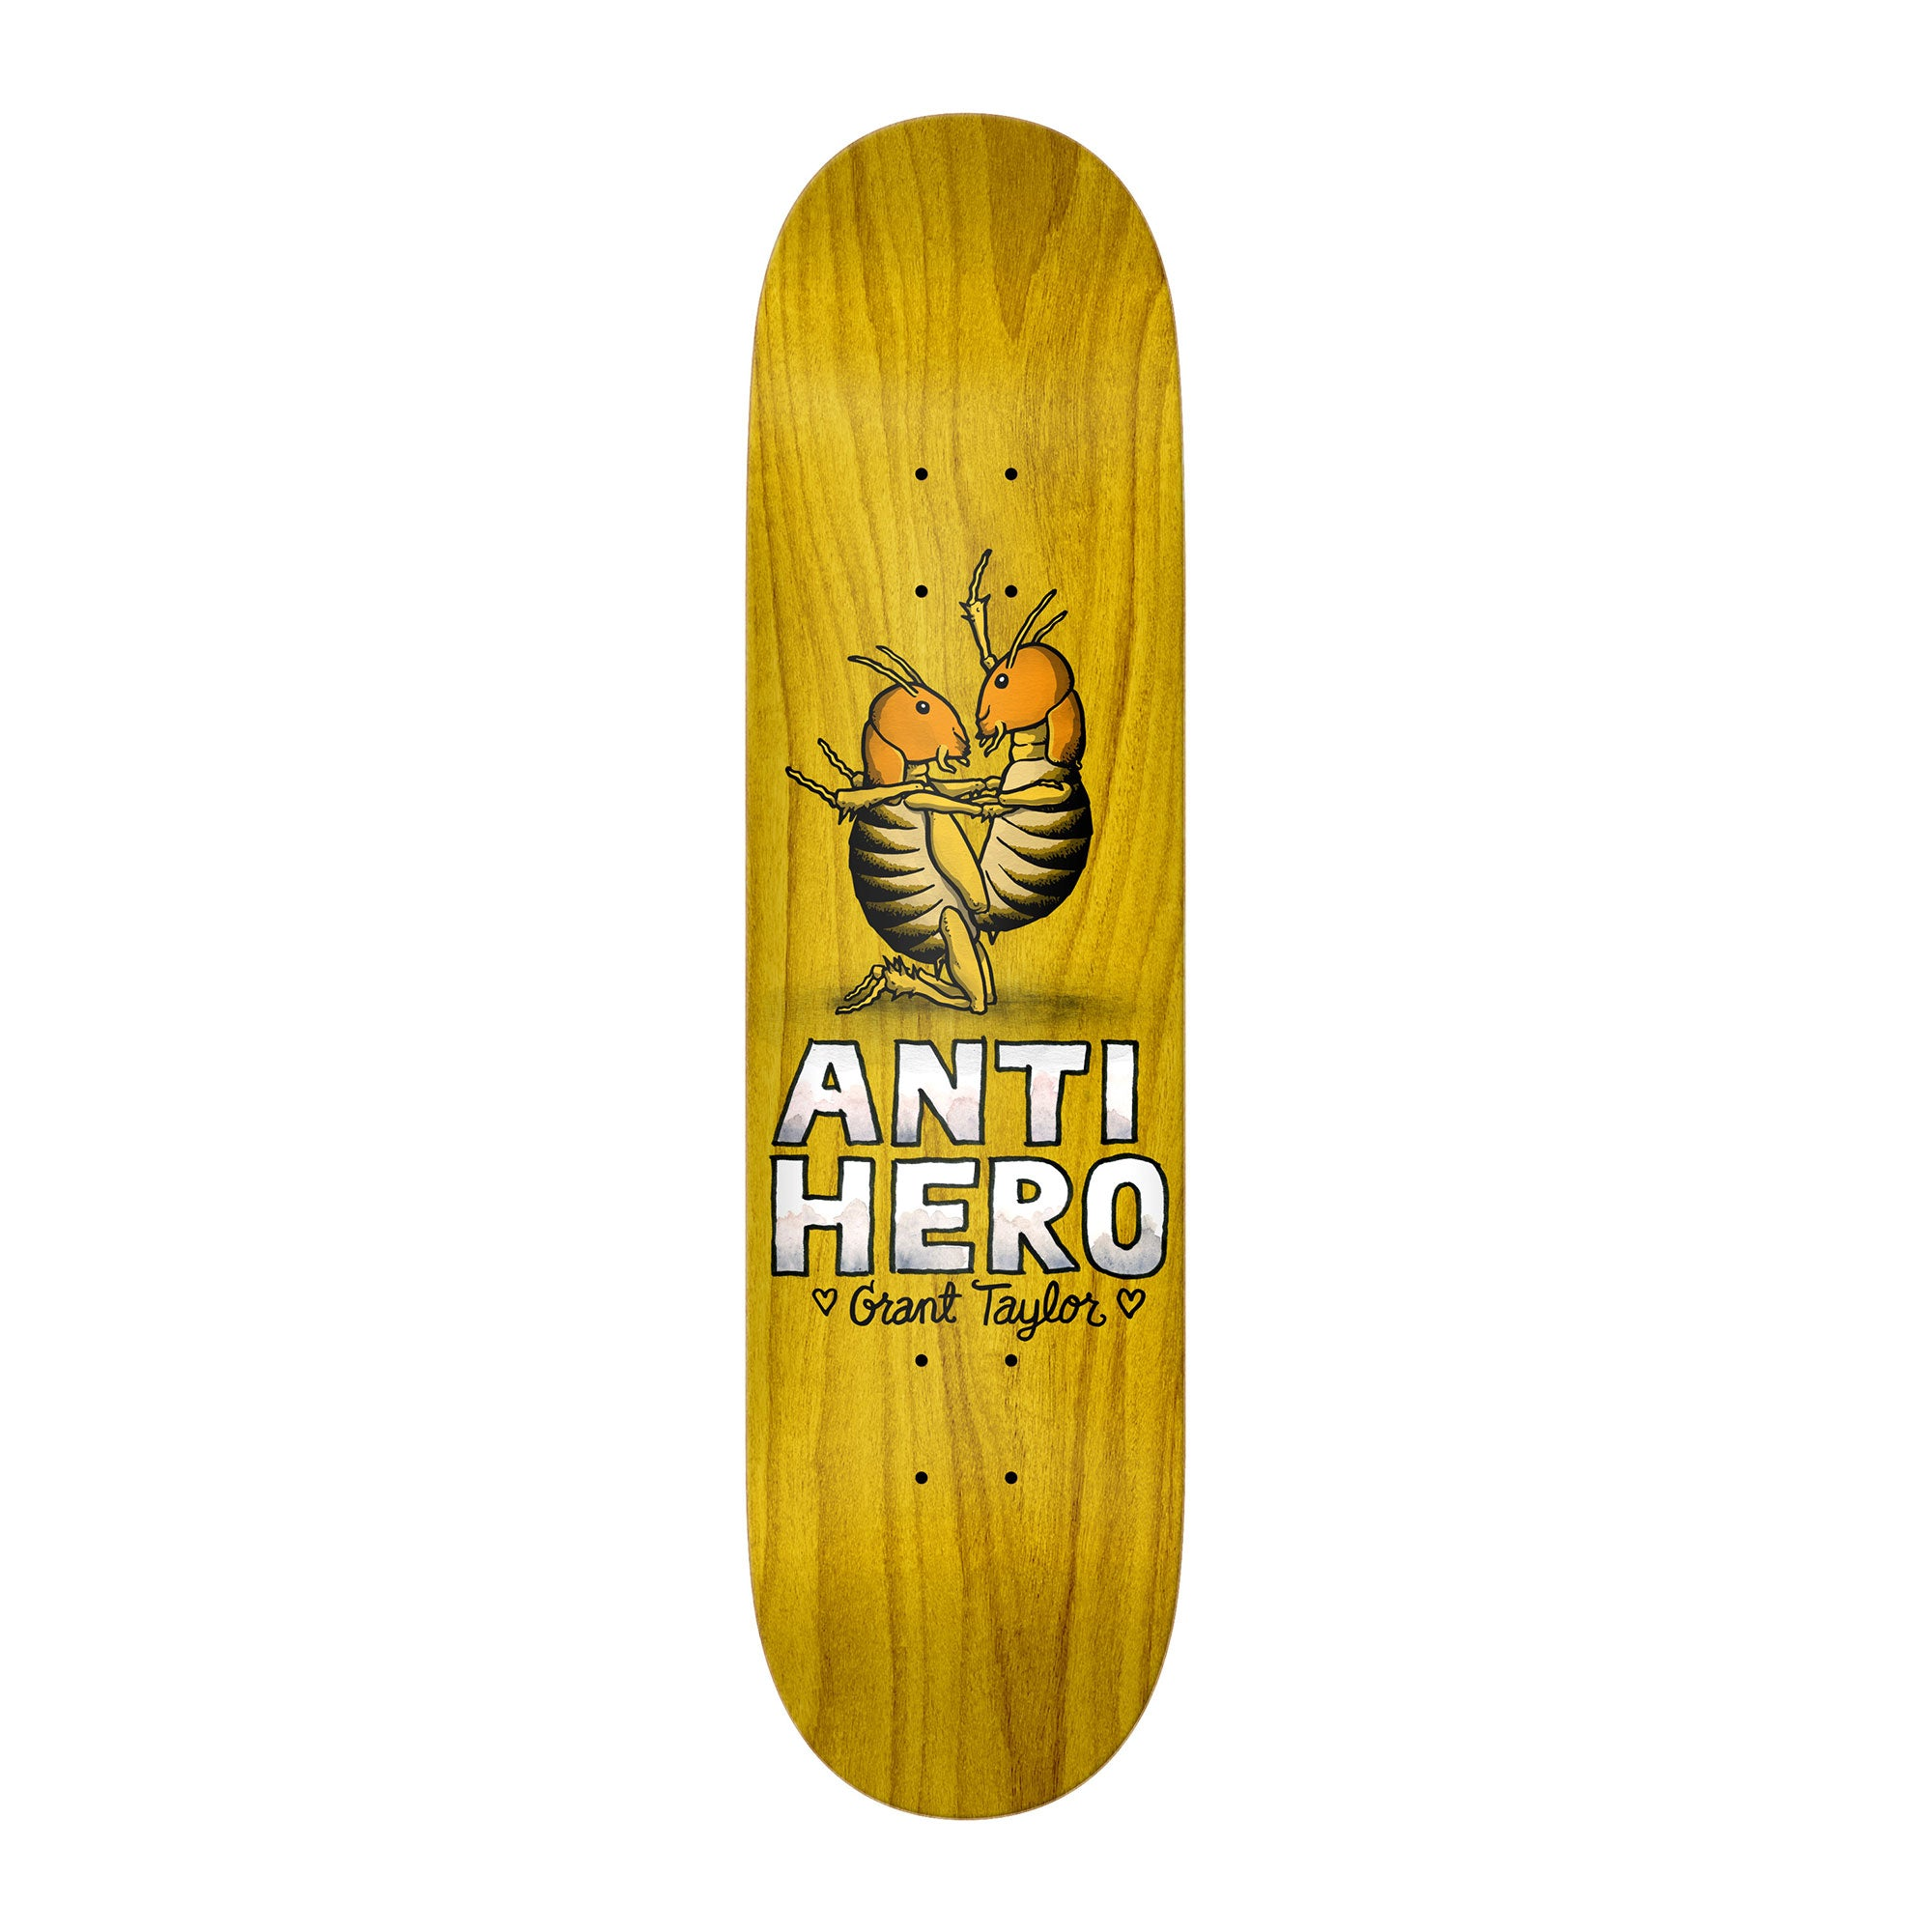 Anti-Hero Lovers II Taylor Deck Product Photo #1